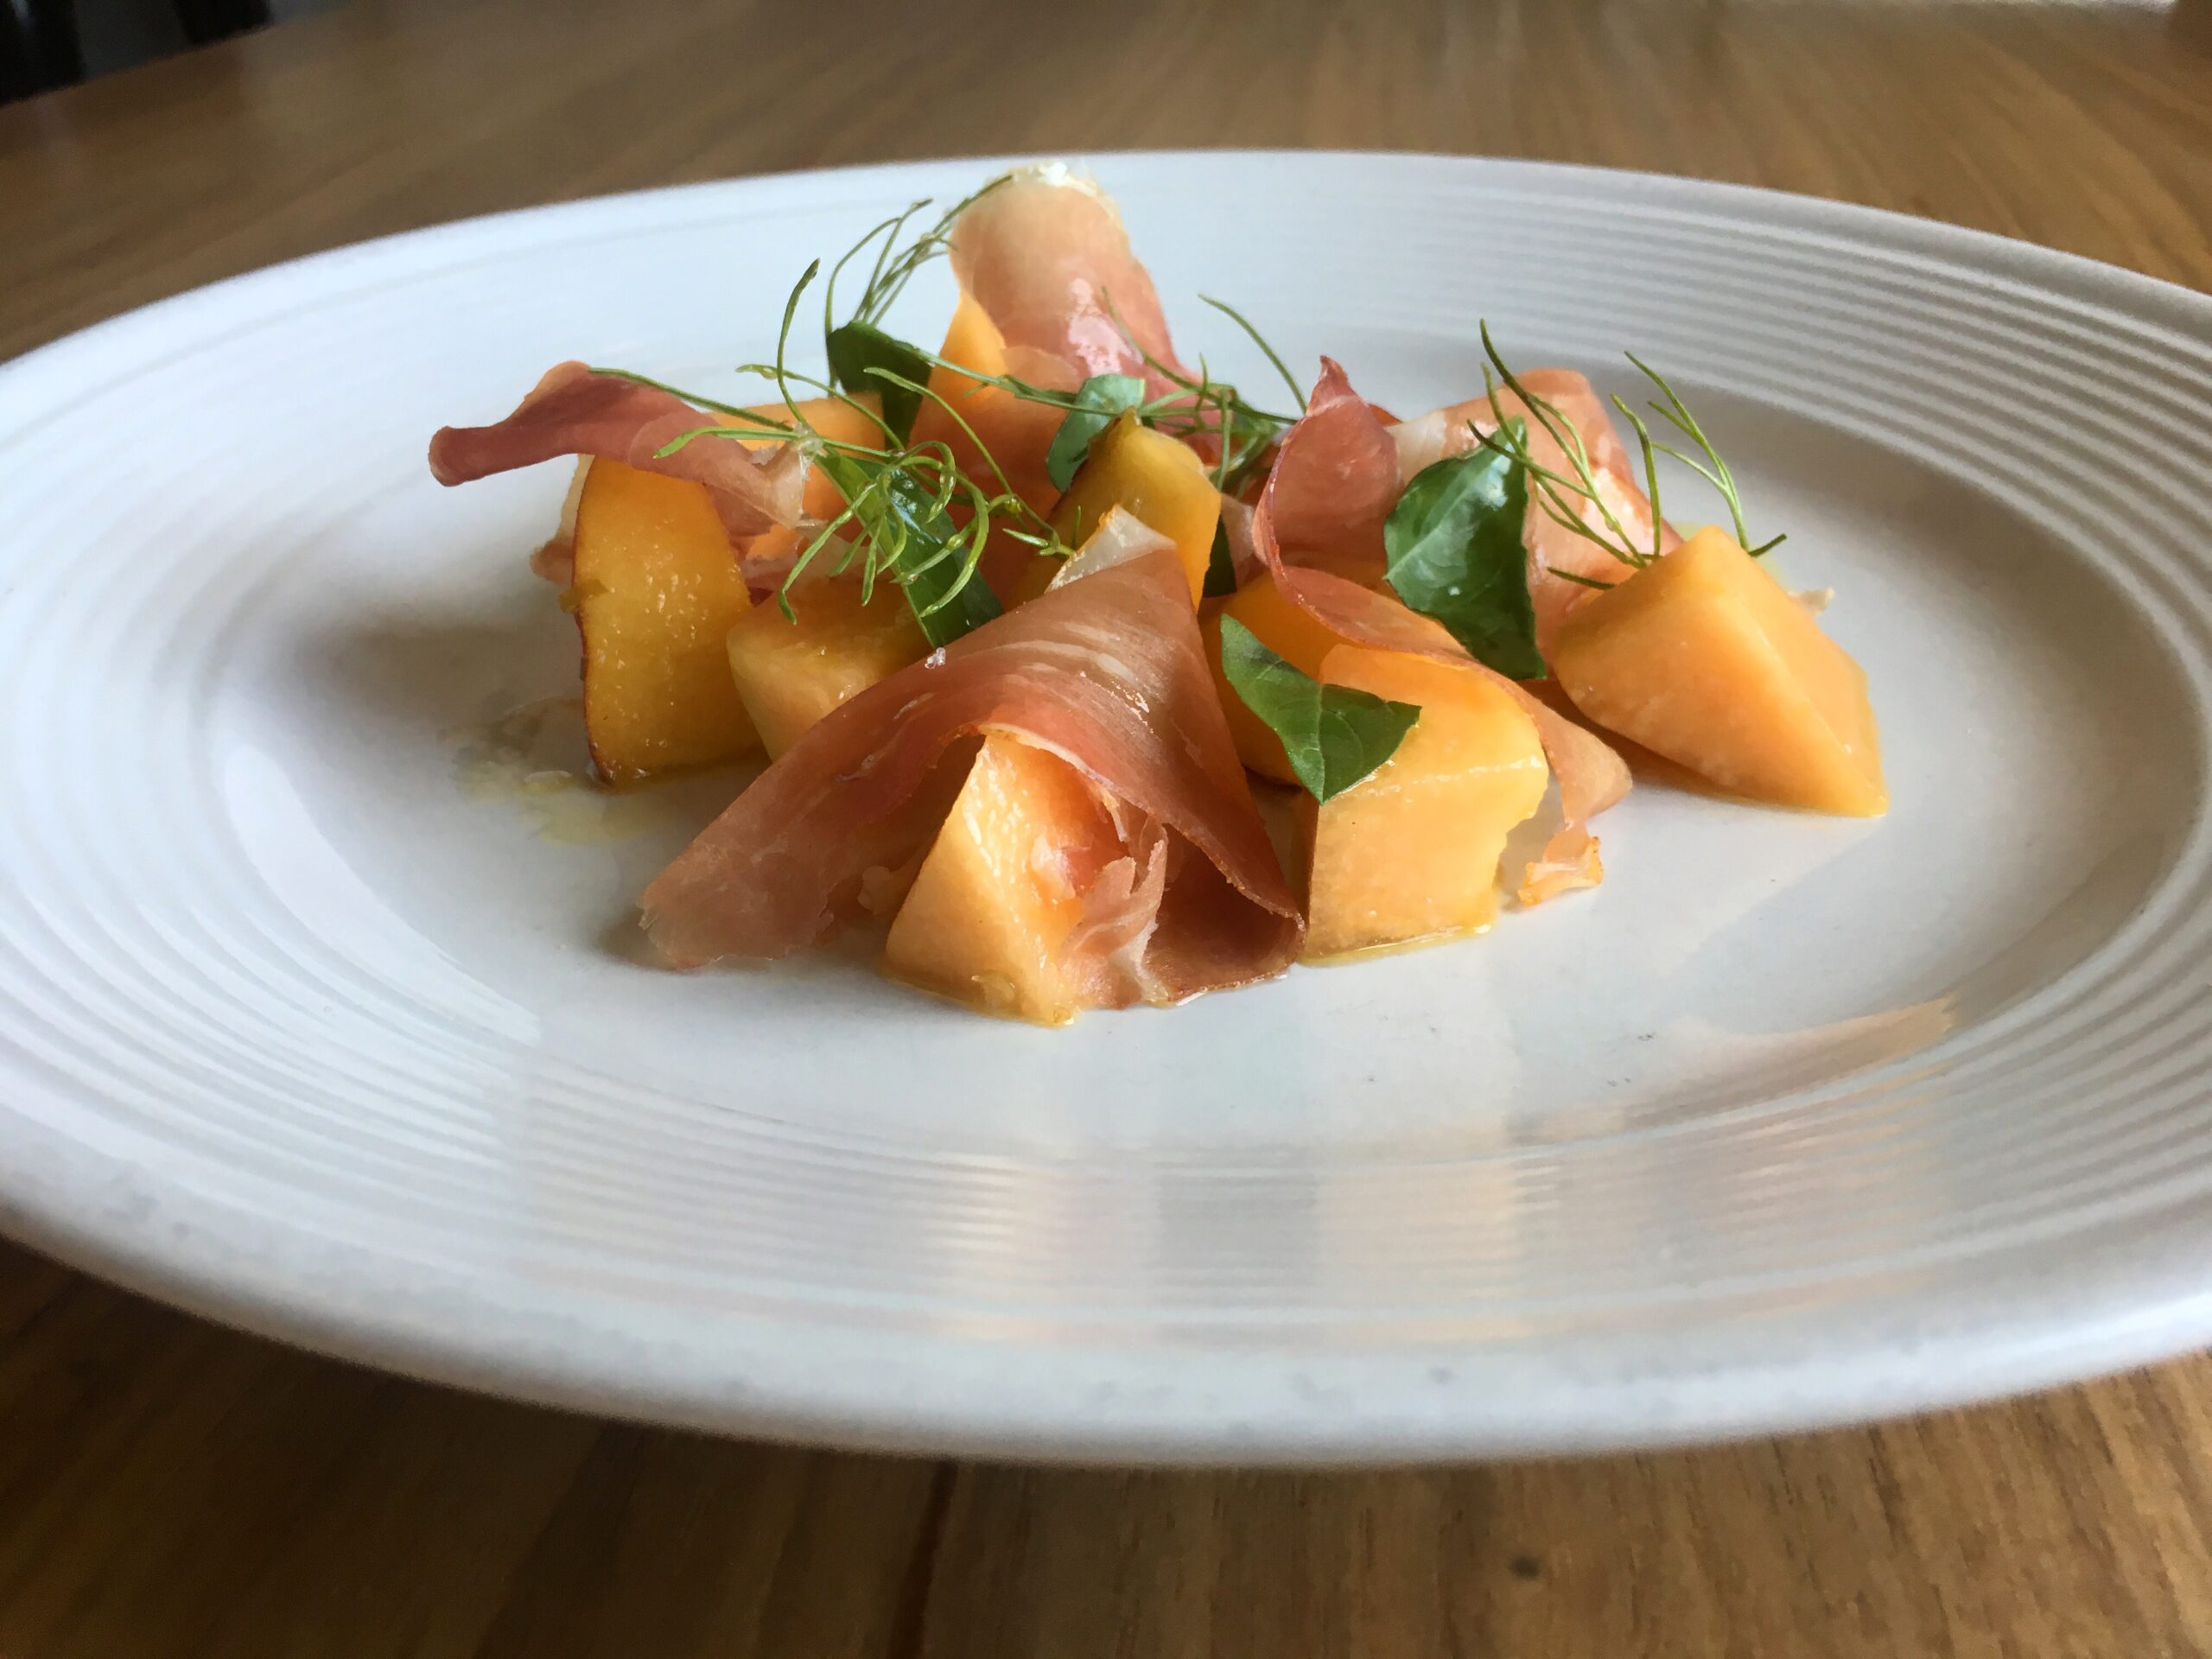 Melon and Prosciutto Salad by Bufalina Due